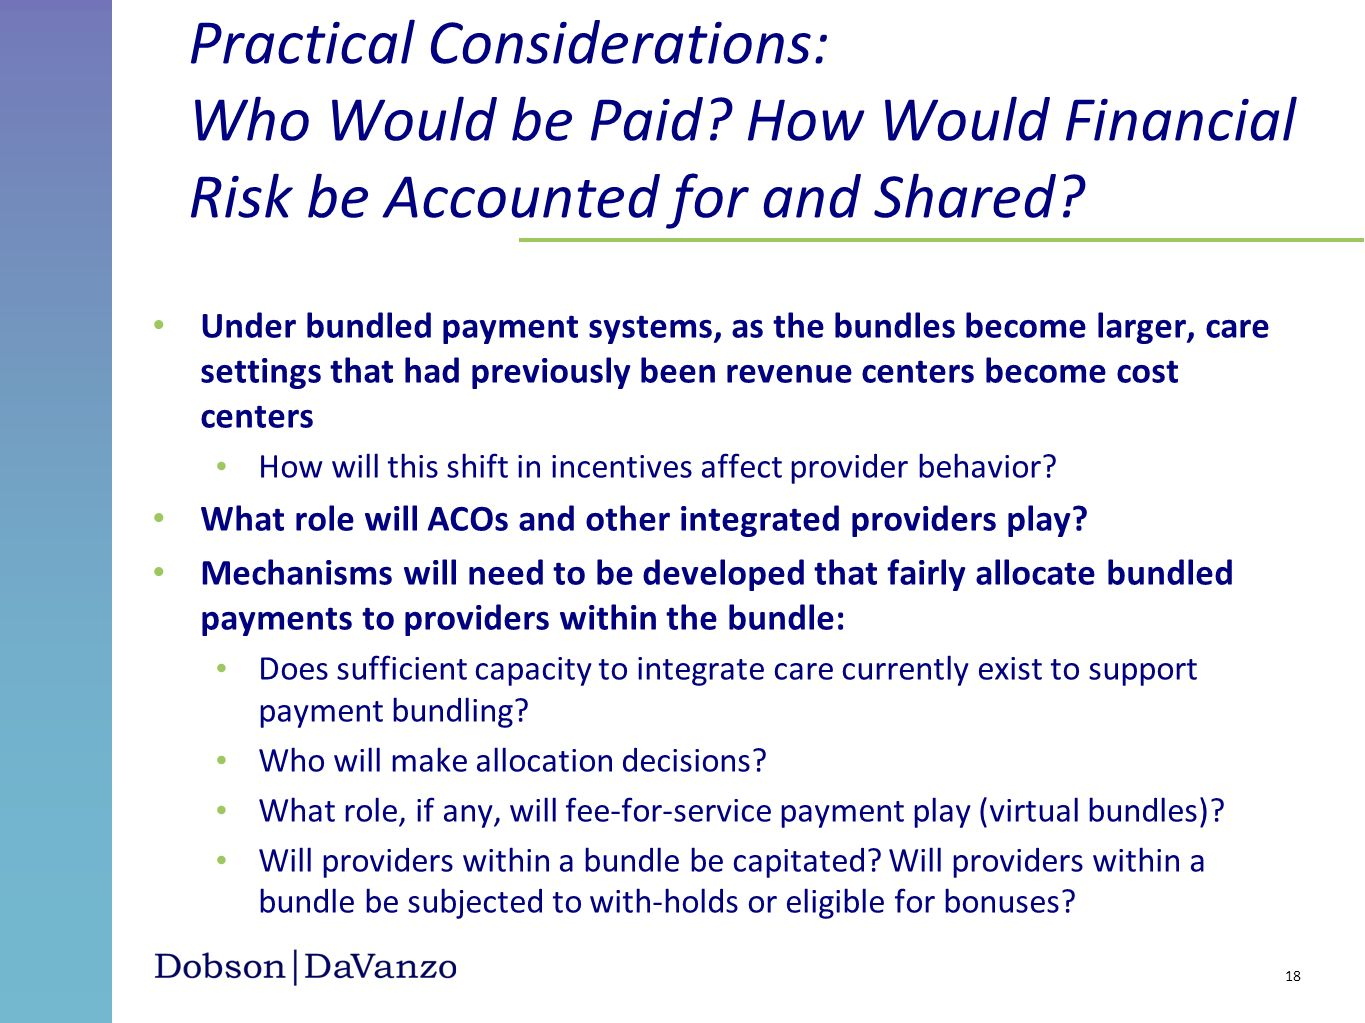 Practical Considerations: Who Would be Paid